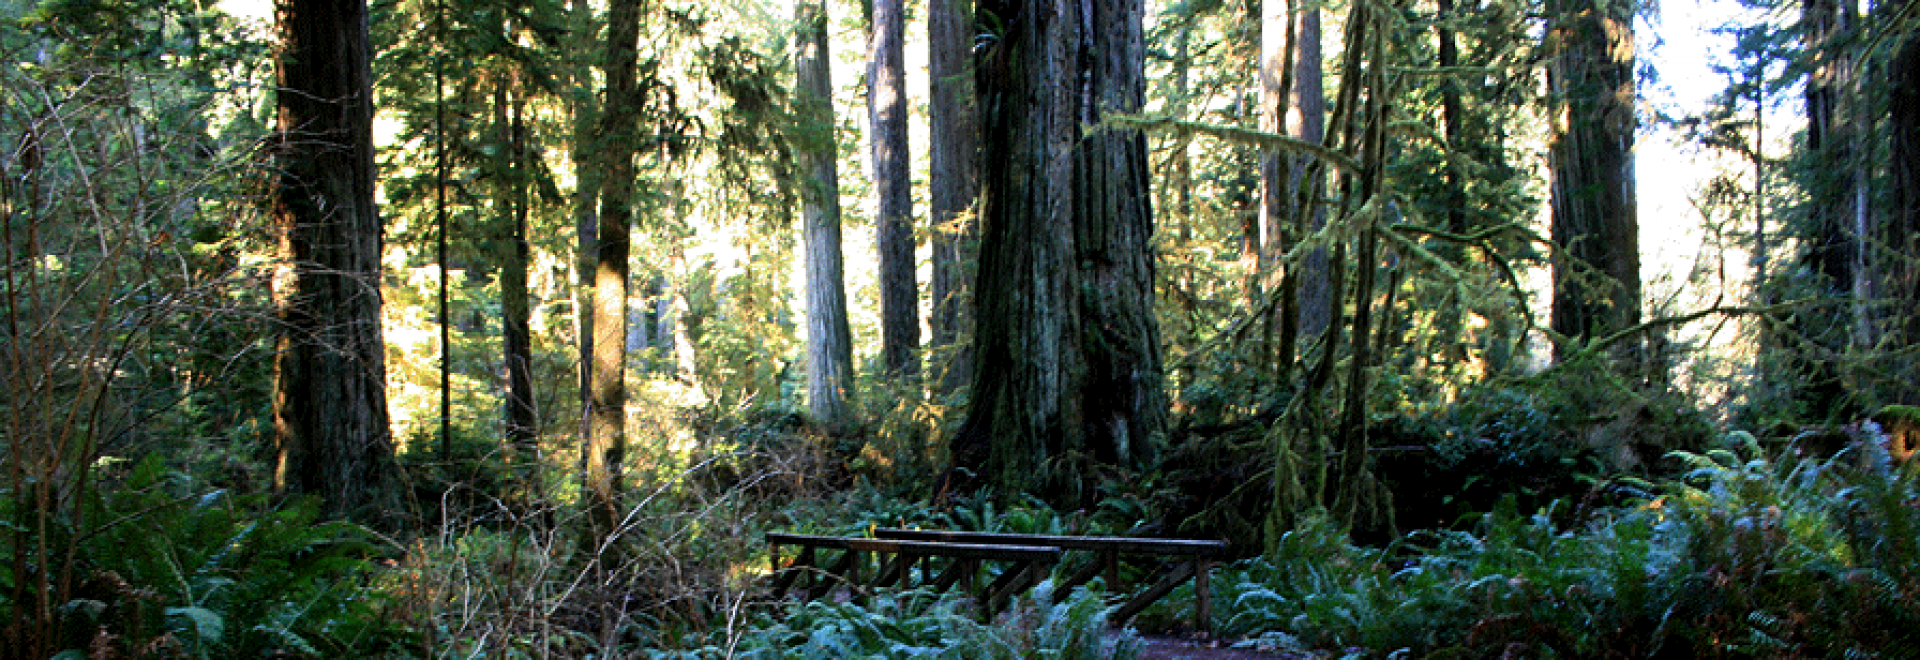 cathedral trees trail